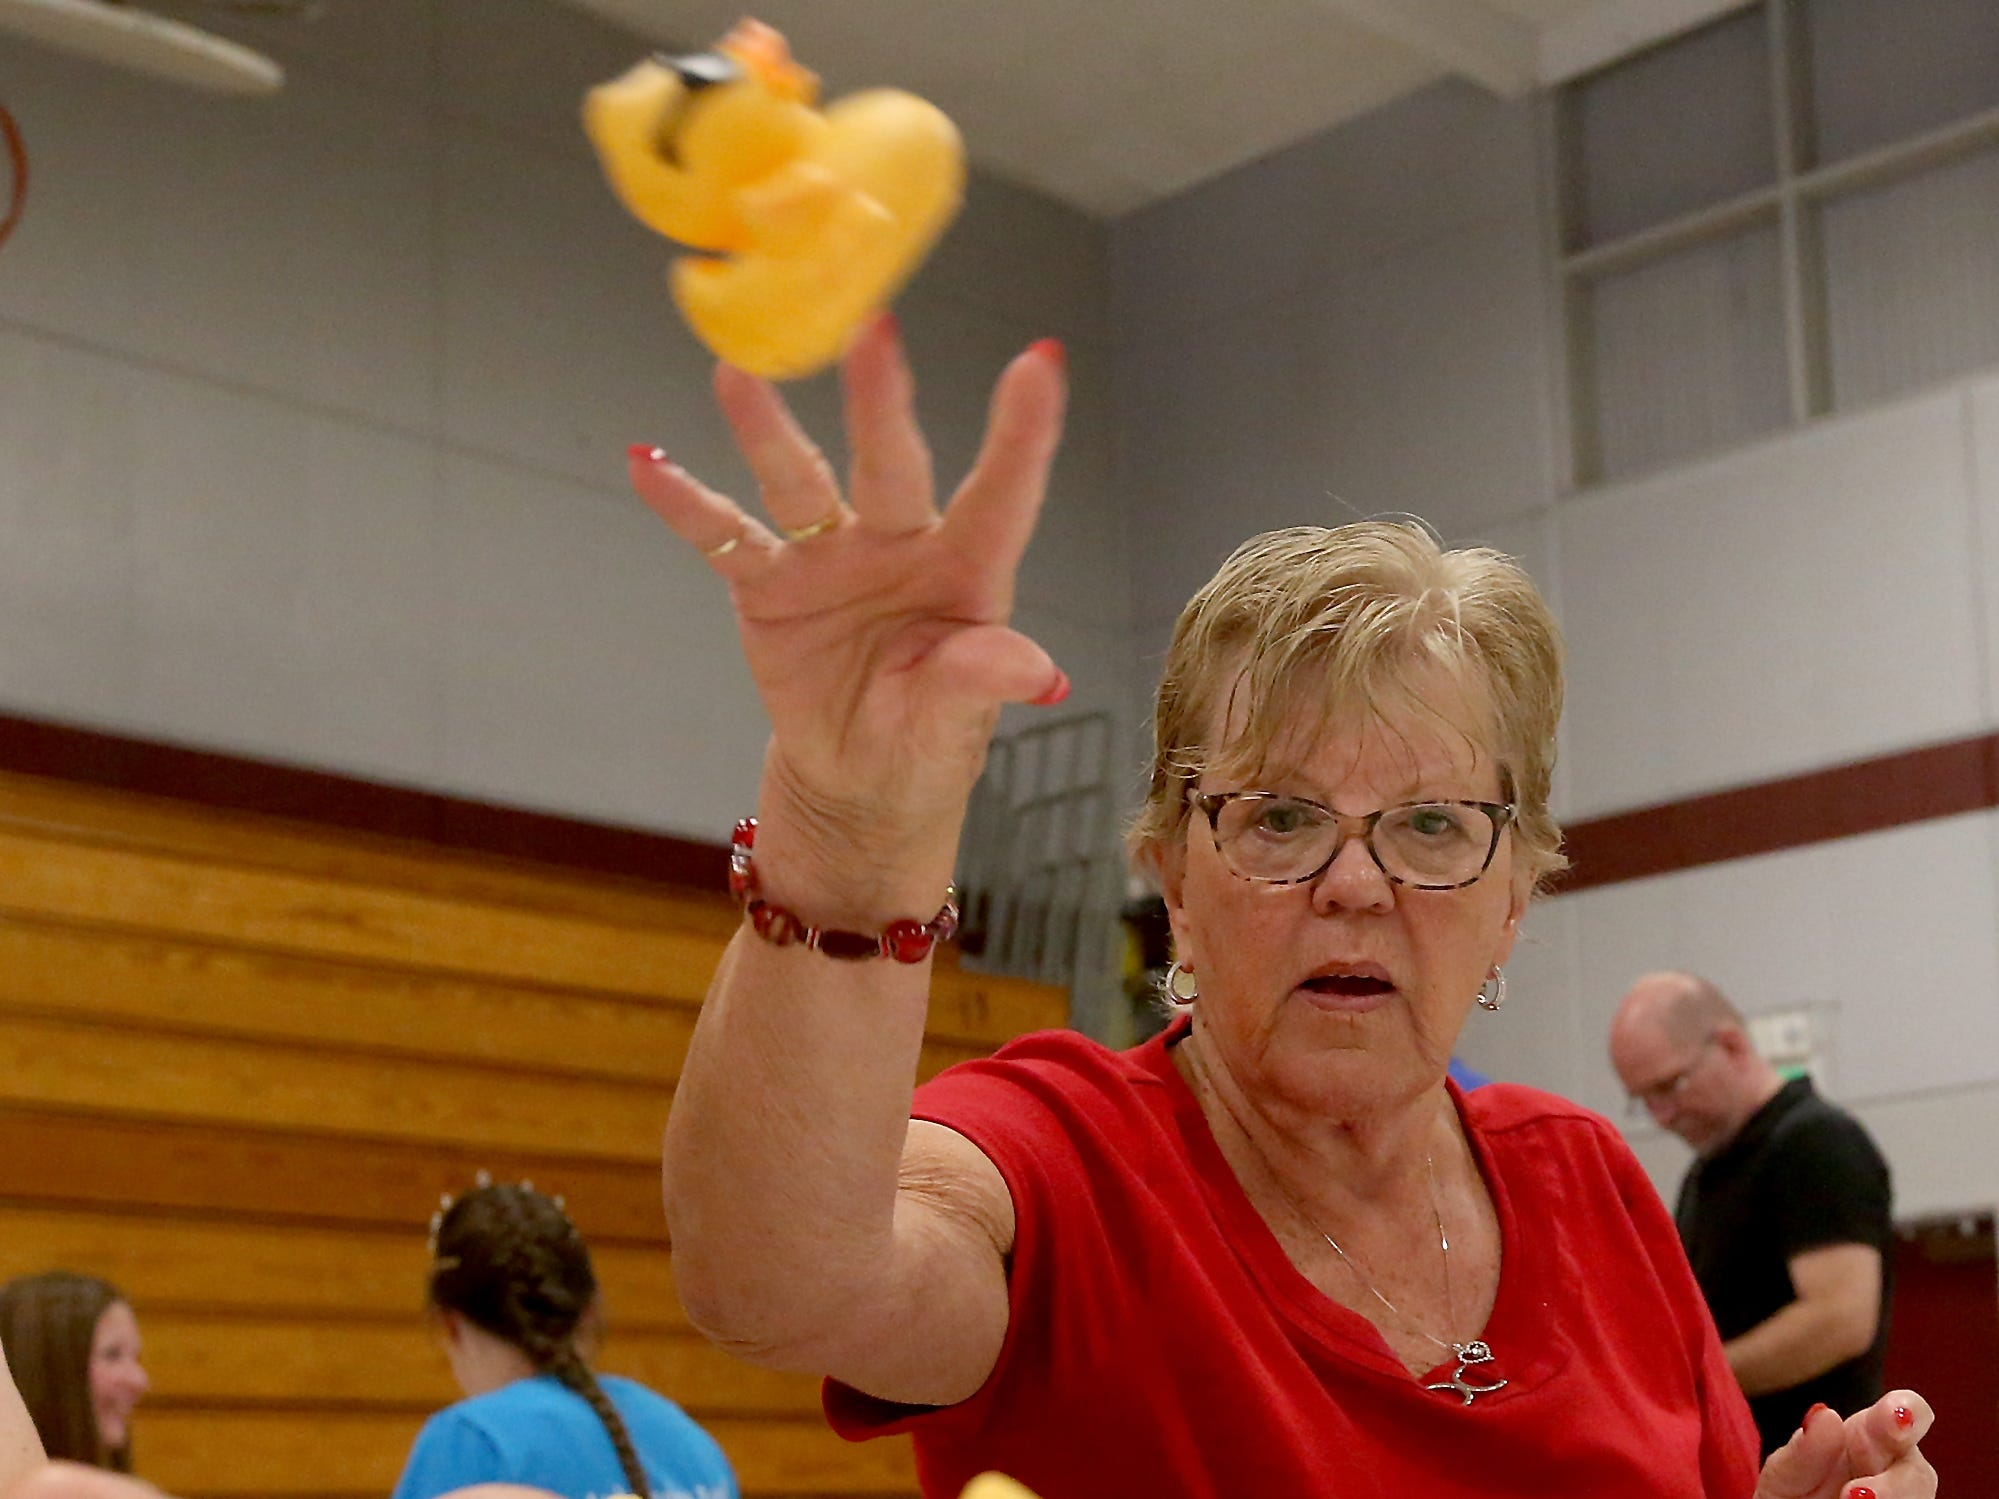 Silverdale Rotarian Sharon McGavick tosses a rubber duck into the air and toward the finished duck box after sticking a new raffle number on it for the upcoming Silverdale Rotary Duck Race, at Central Kitsap Middle School in Silverdale on Thursday, July 26, 2018. The 25th Anniversary Silverdale Rotary Duck Race takes place on Sunday at Silverdale Waterfront Park.